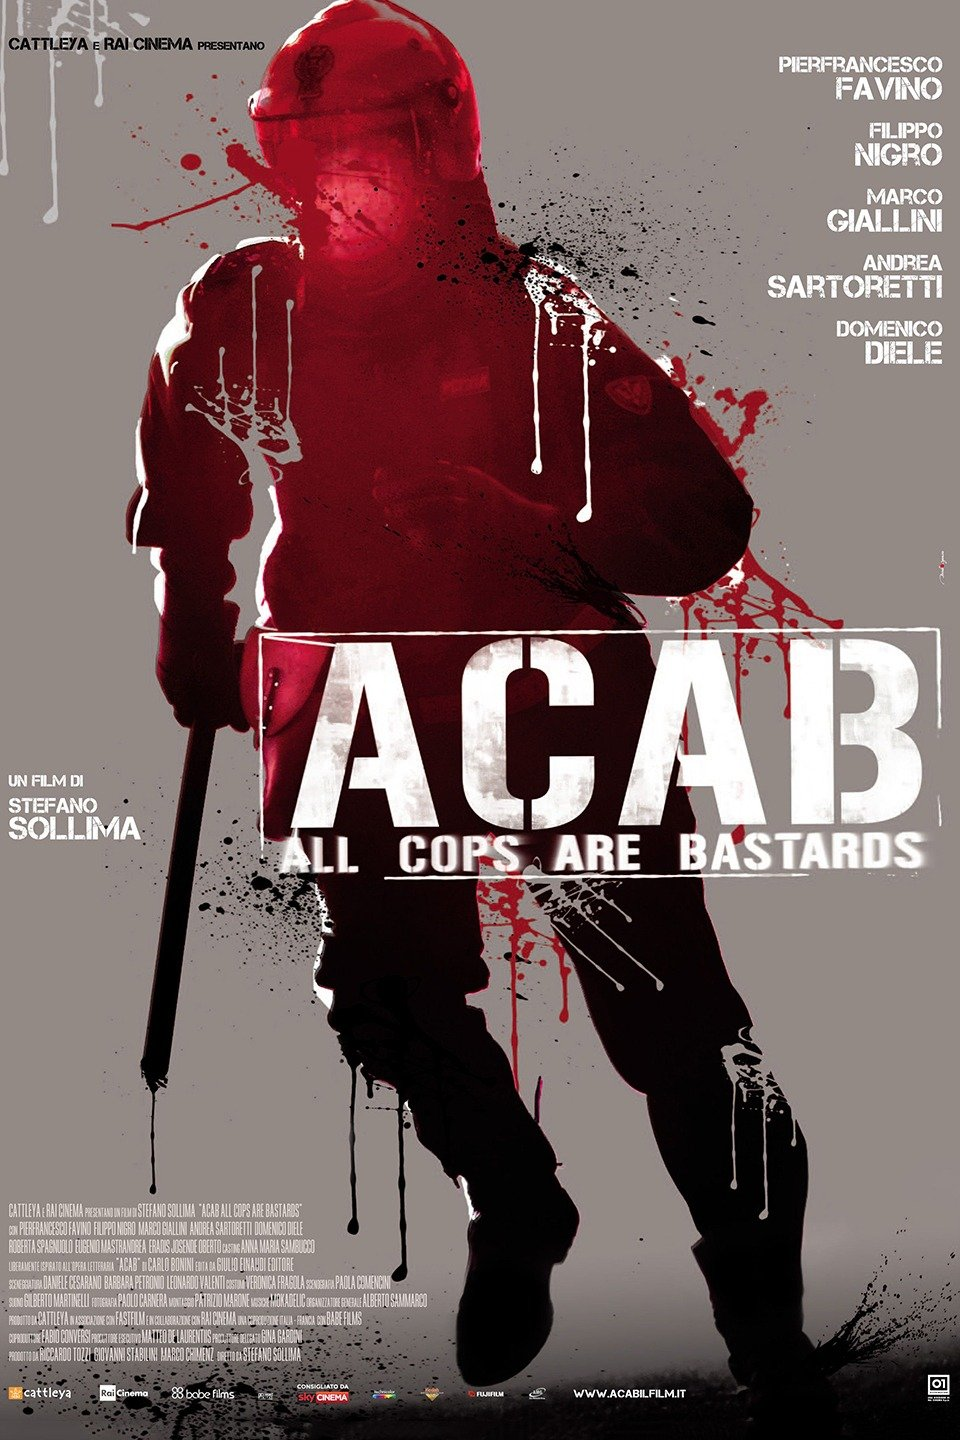 A.C.A.B.-ACAB - All Cops Are Bastards